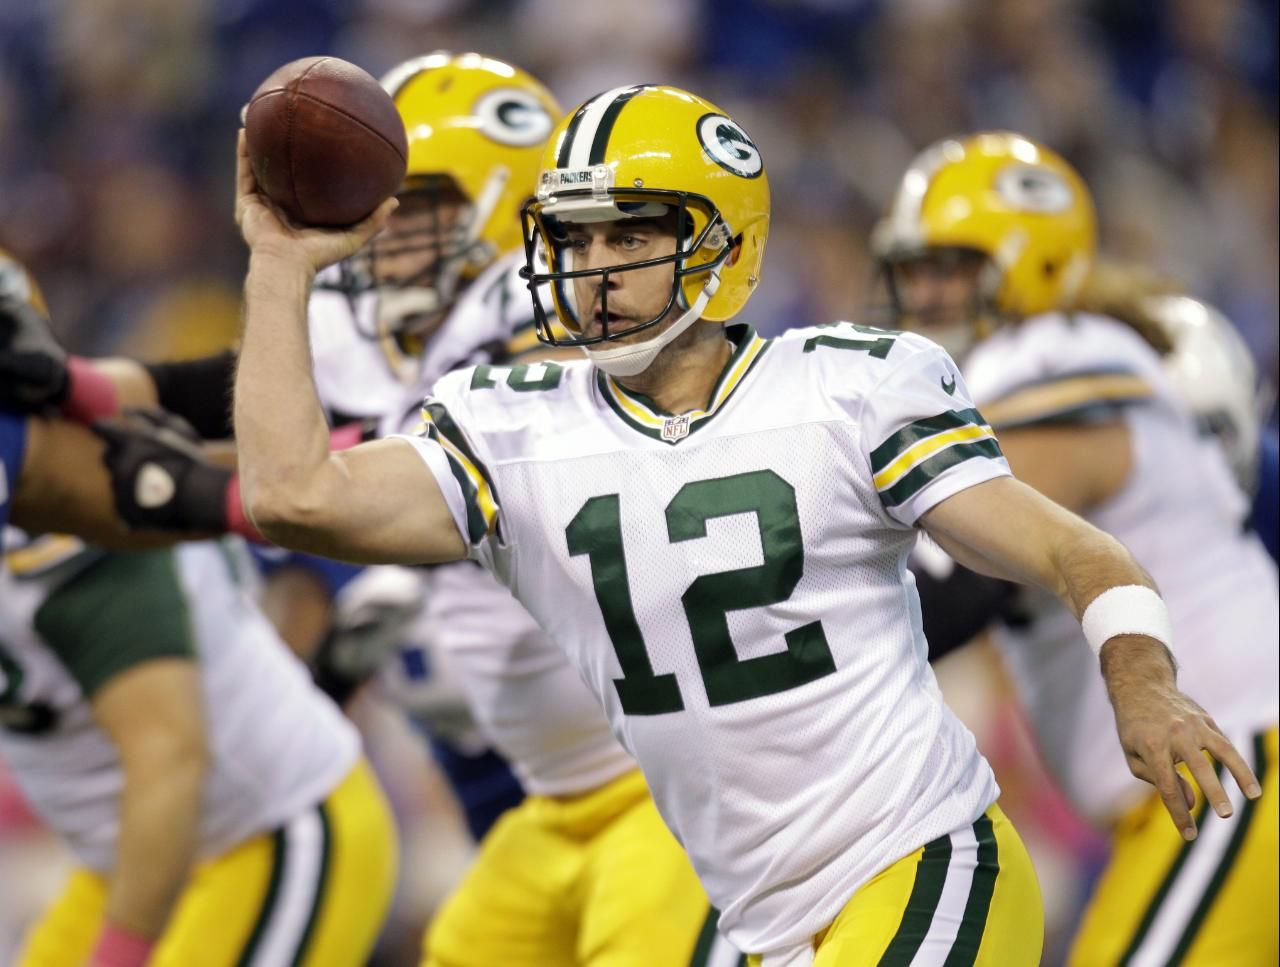 Packers Colts Football Aaron Rodgers Aaron Rodgers Colts Football Football